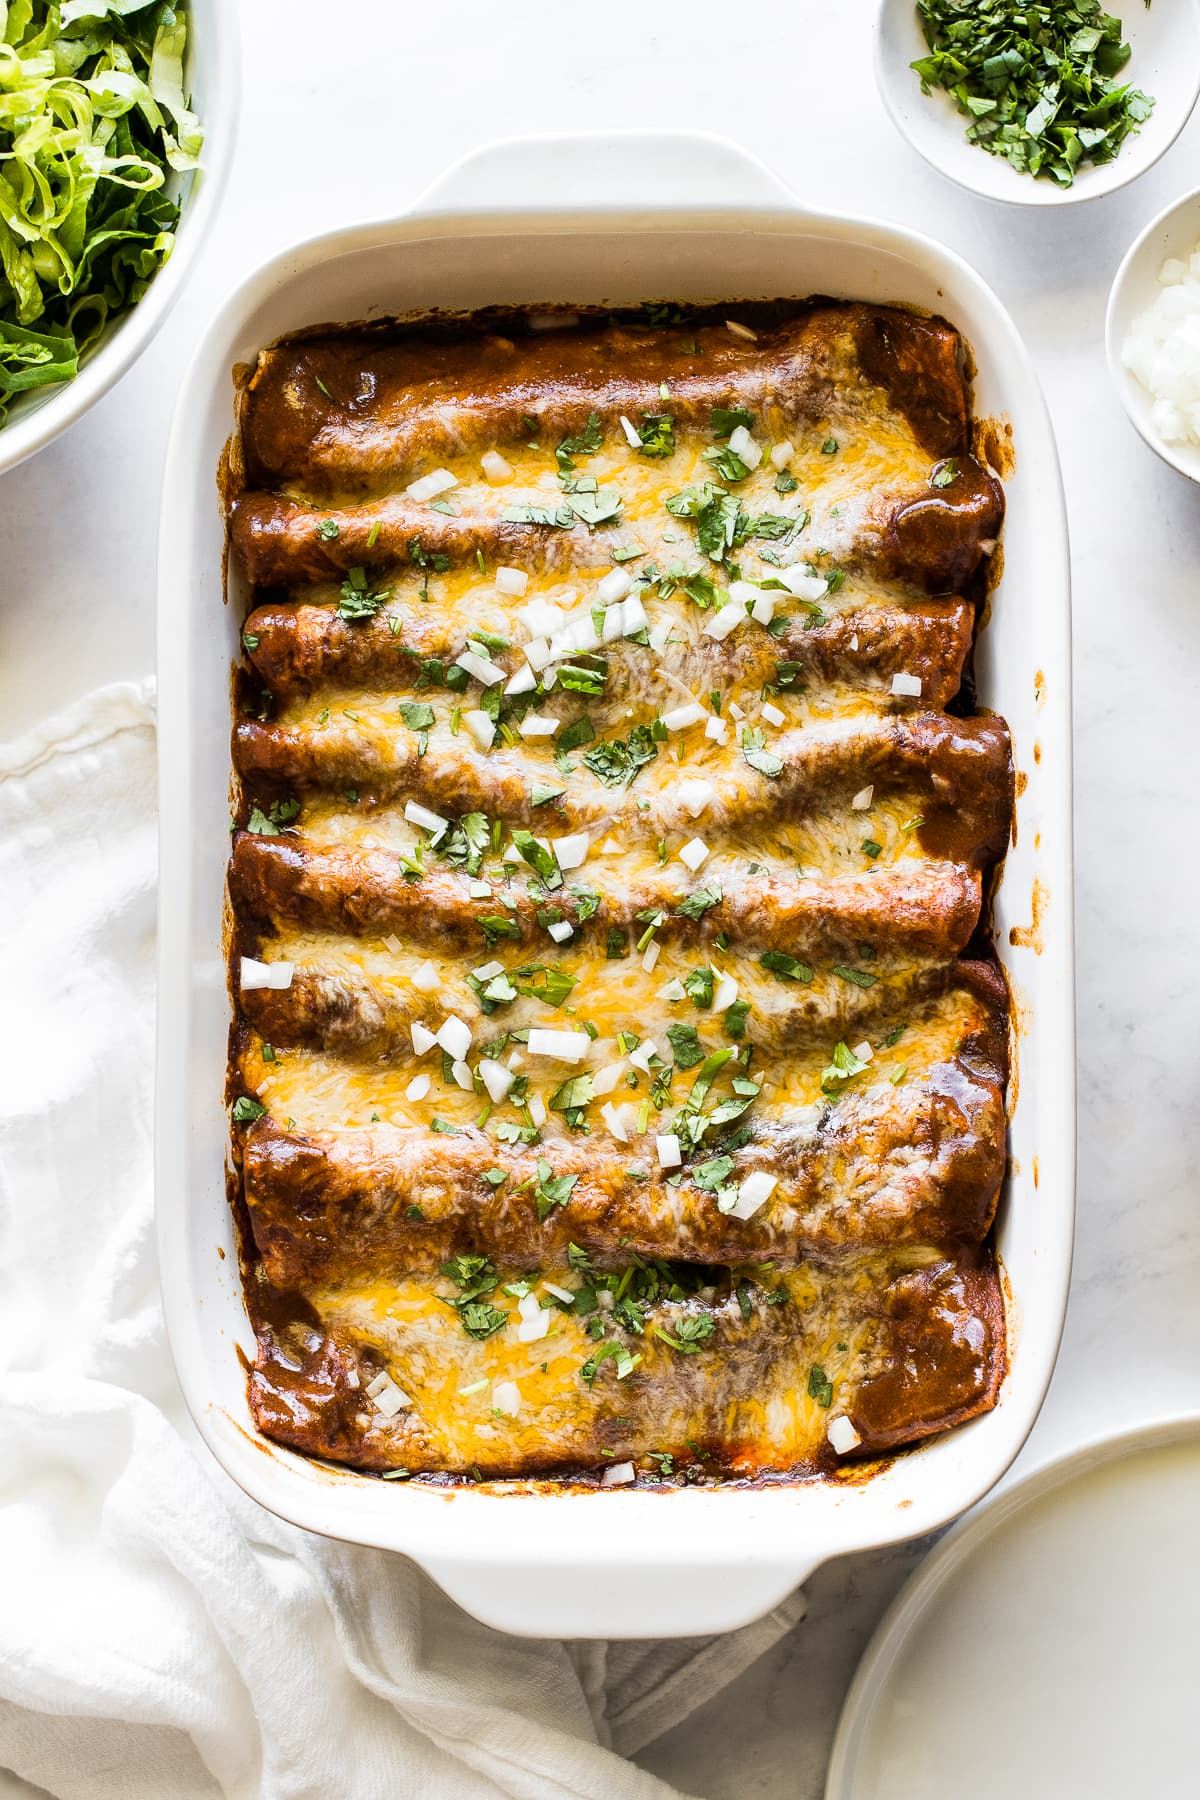 Baked beef enchiladas in a baking dish topped with cilantro and onions.